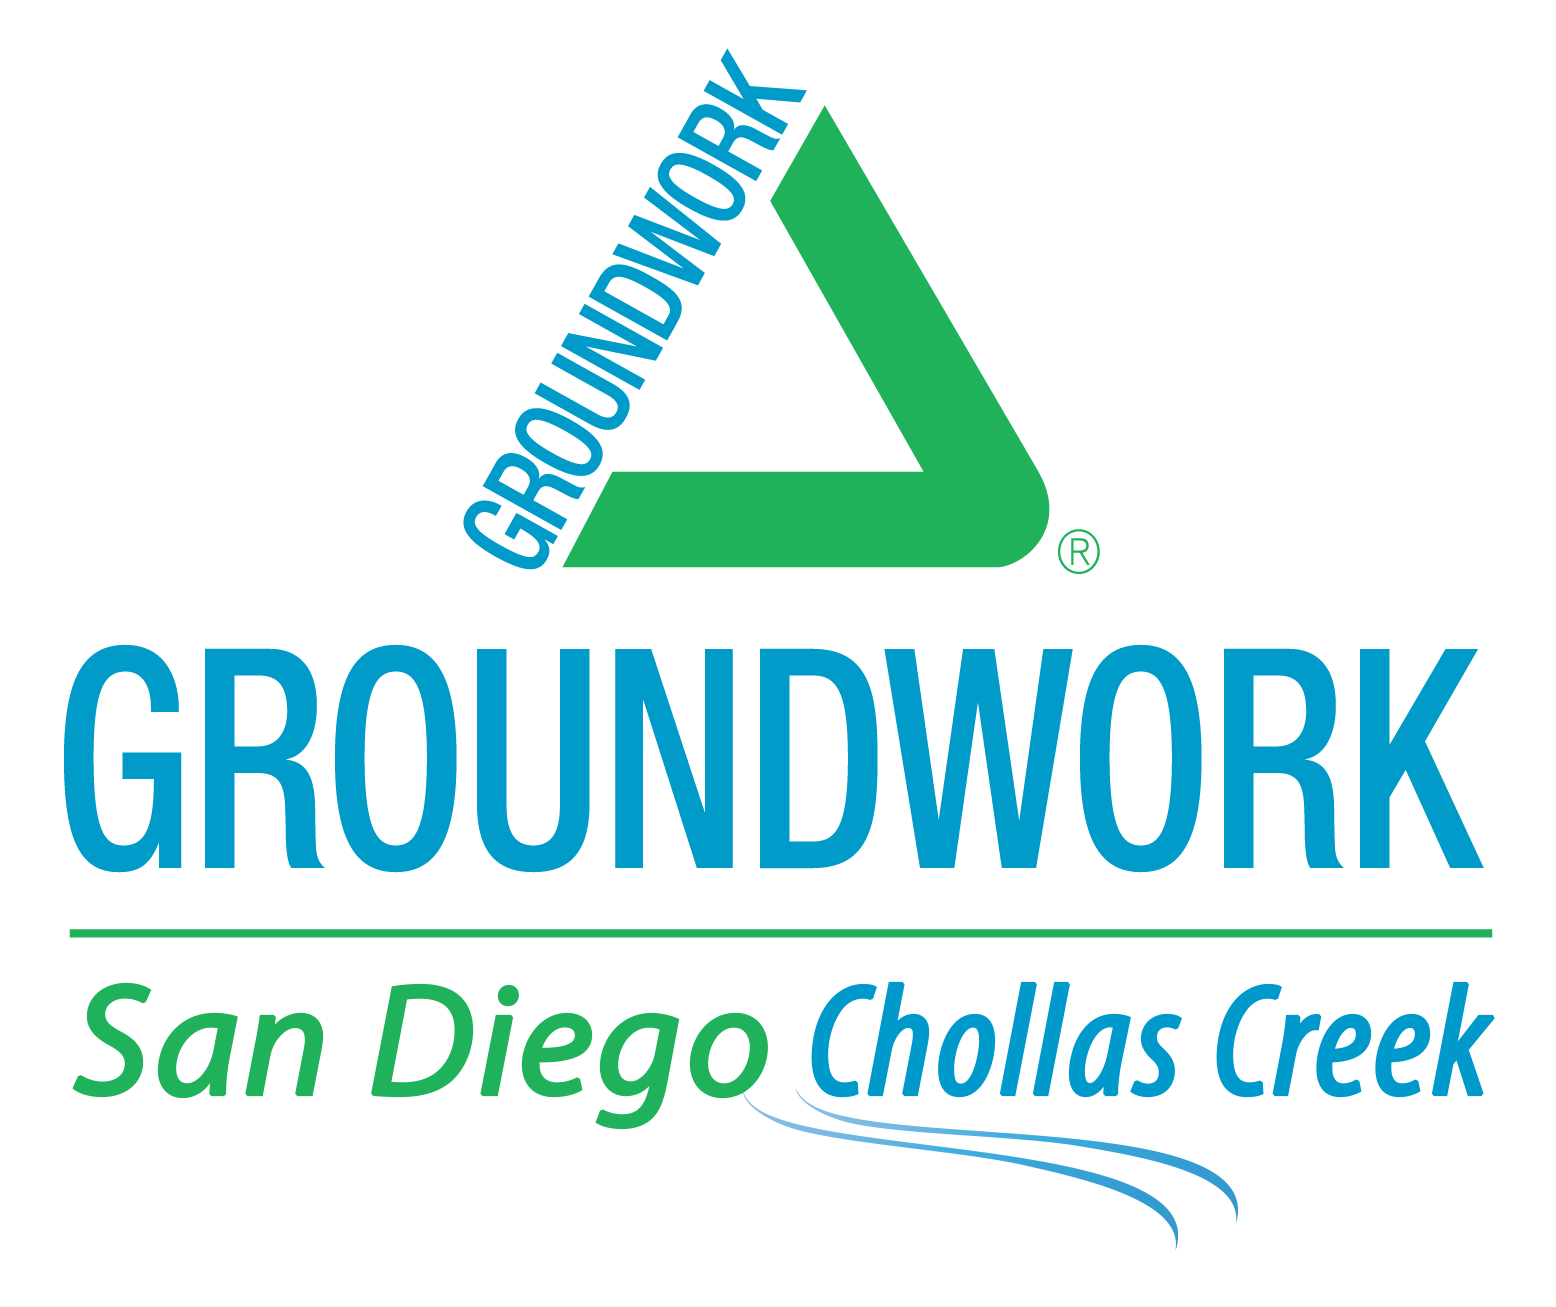 Groundwork San Diego - Chollas Creek